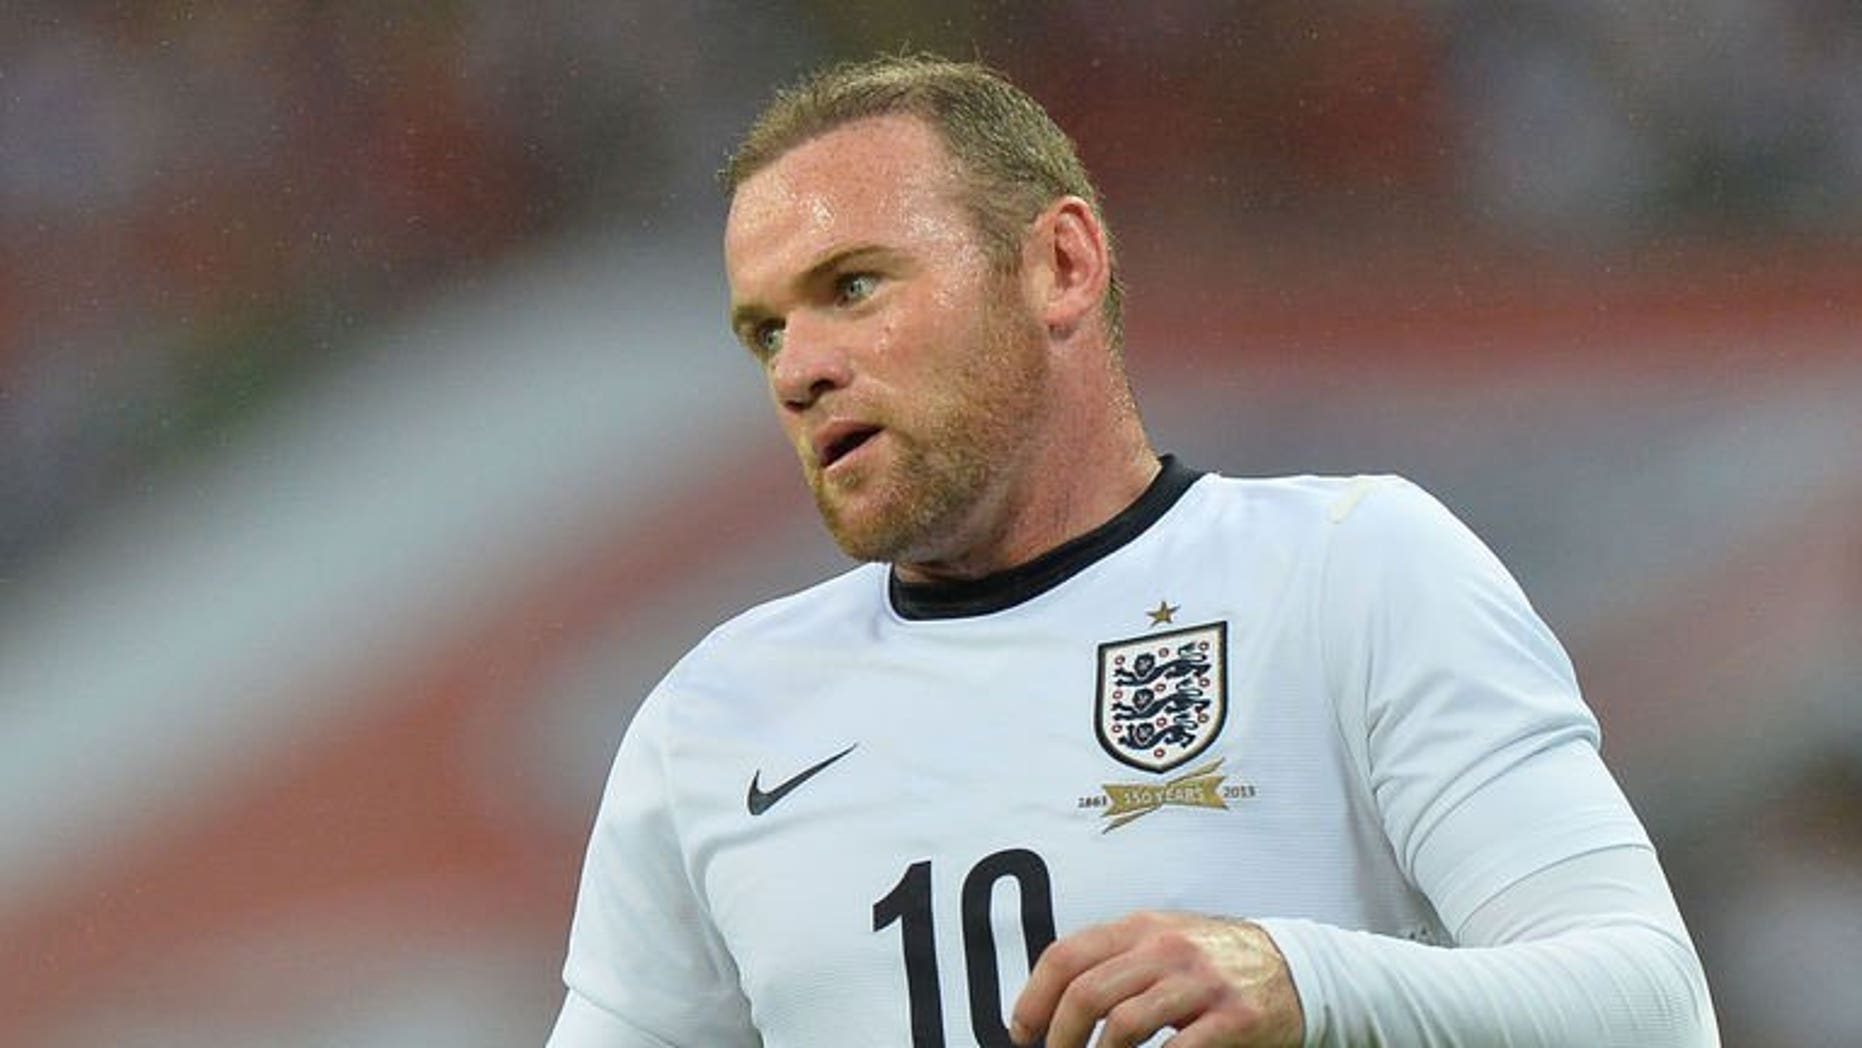 England striker Wayne Rooney plays during the international friendly with Scotland at Wembley Stadium in London on August 14, 2013. Manchester United manager David Moyes said he will assess Rooney's fitness before deciding whether to field the unsettled striker in the club's opening Premier League game.